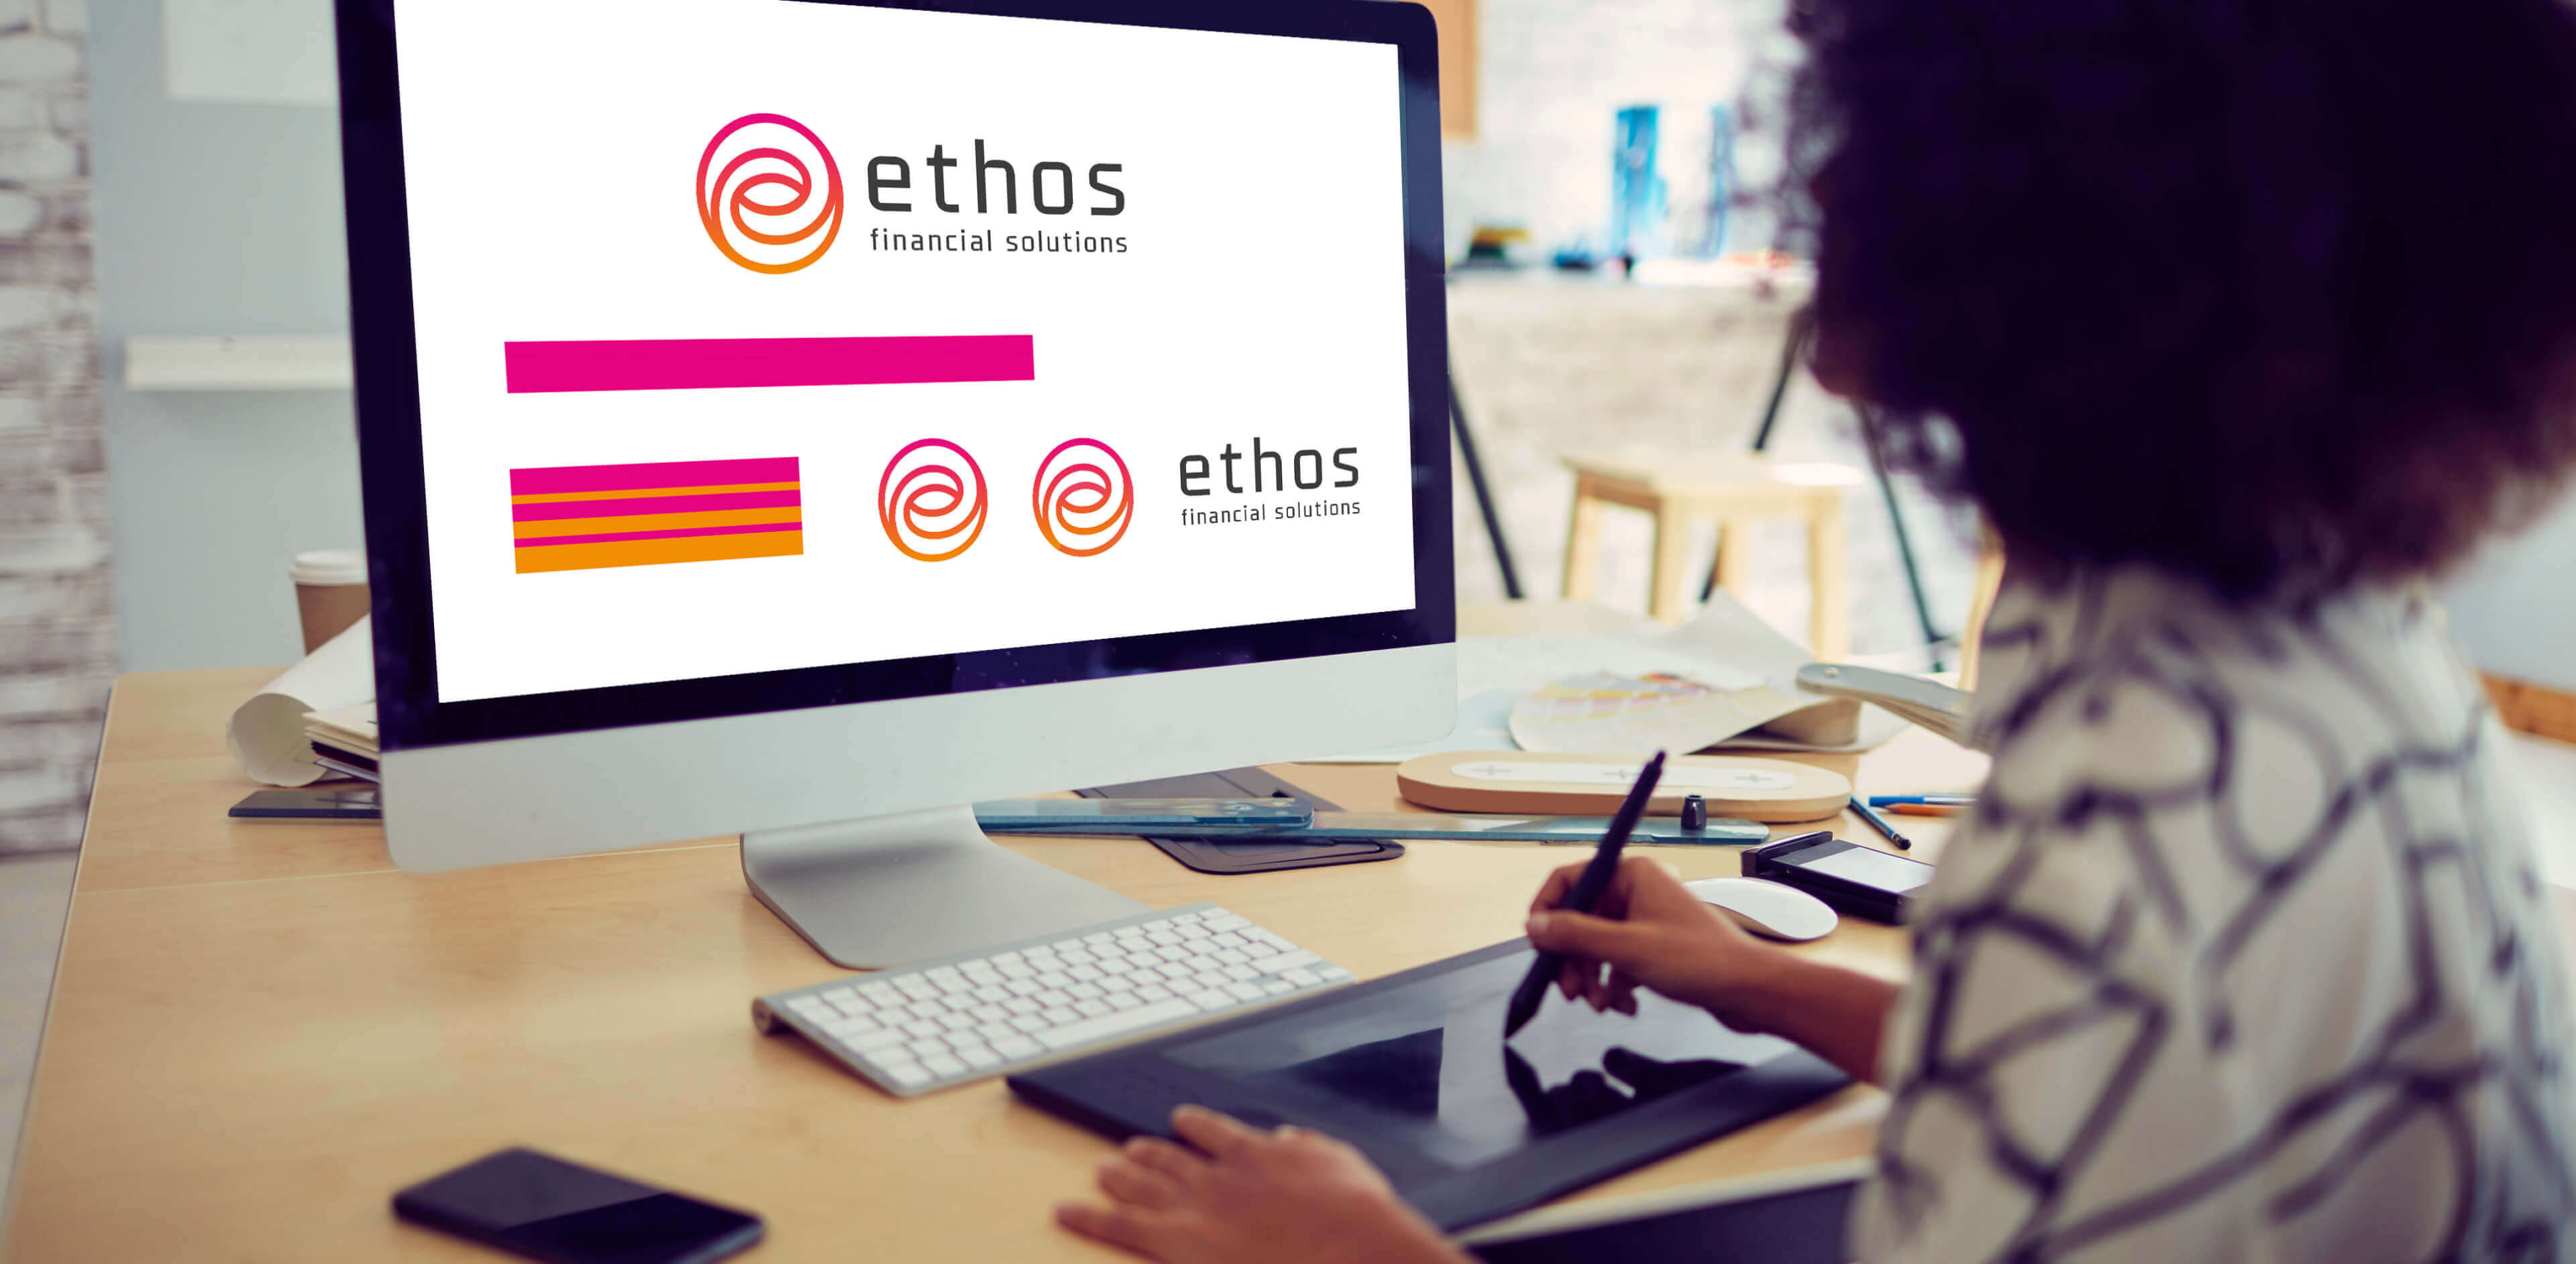 Ethos Logo design ideas on a laptop